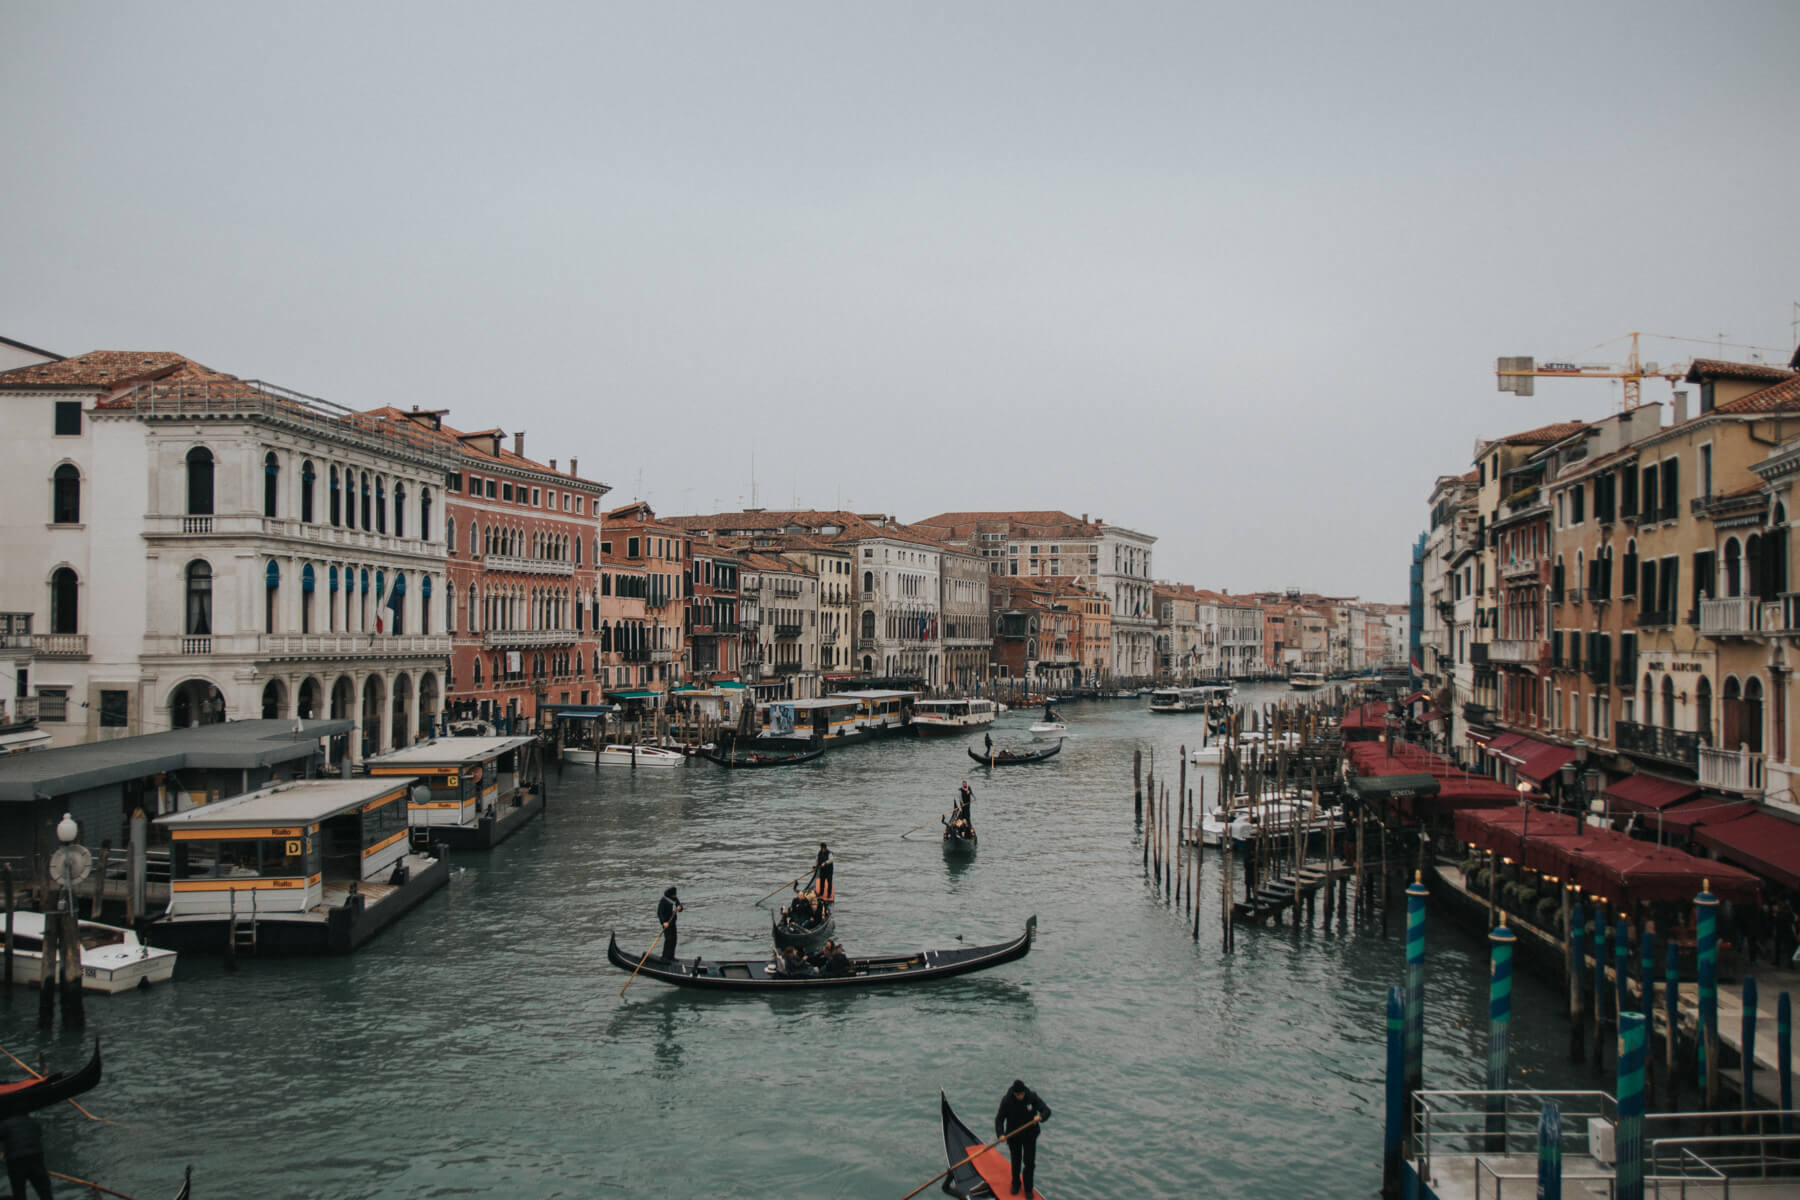 Beautiful sights in Venice